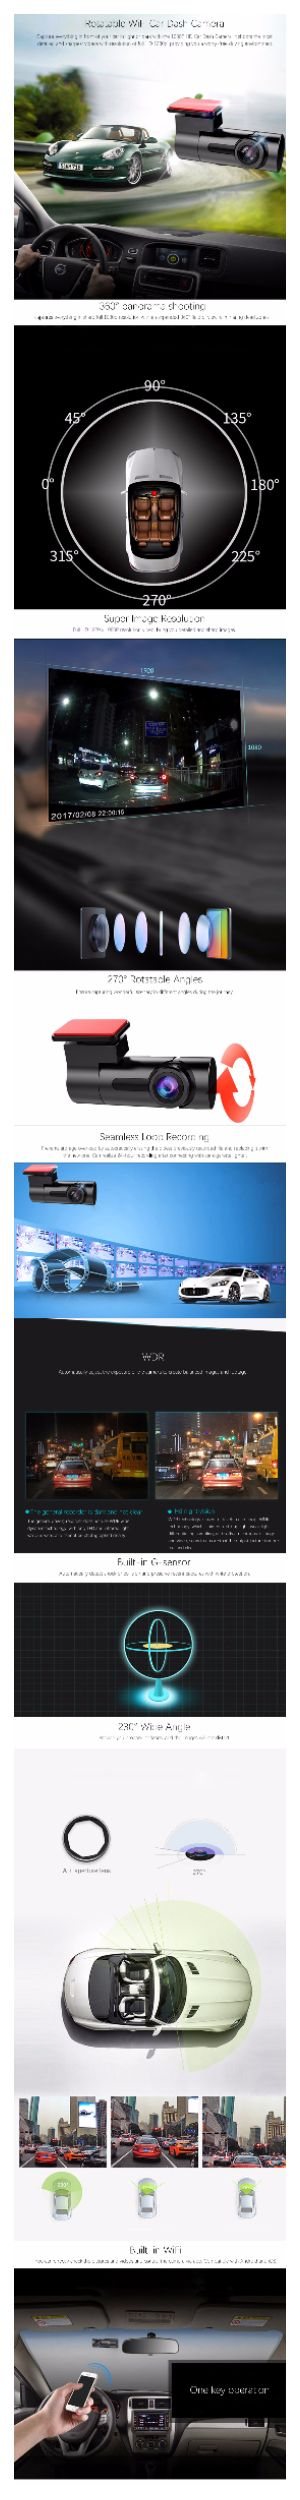 1080P 360° Panorama WiFi Car Dash Camera 230° Wide Angle Night Vision WDR Capture everything in front of your car in light or dark with the 1080P HD Car Dash Camera. It shoots the most detailed and sharpest videos with resolution of full HD 1080p, providing you a worry-free driving environment.  360° panorama shooting  captures everything in sharp full 1080p resolution with an expanded 360° field of view, eliminating dead zones.  Super Image Resolution  Full HD 1920 x 1080P resolution video…